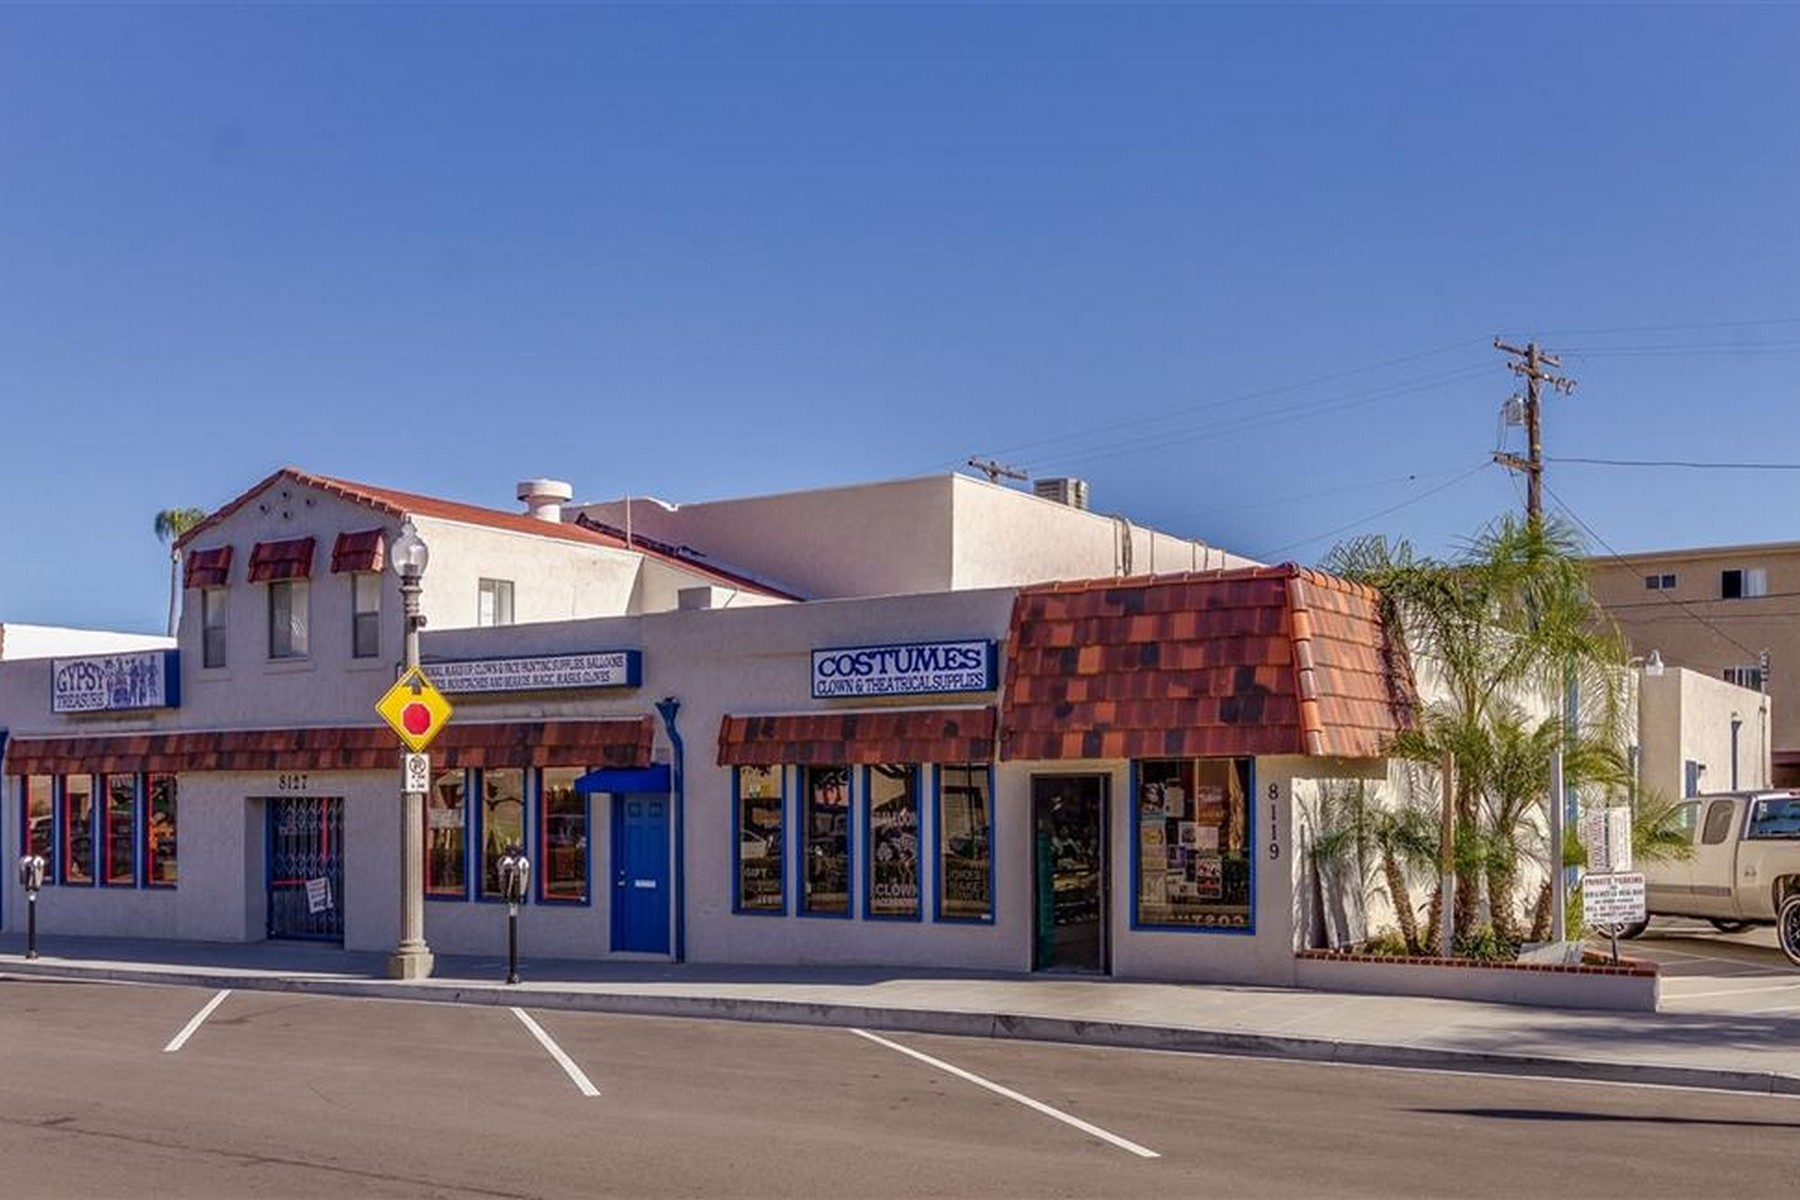 Commercial for Sale at 8127 La Mesa Boulevard 8109-8127 La Mesa Boulevard La Mesa, 91942 United States